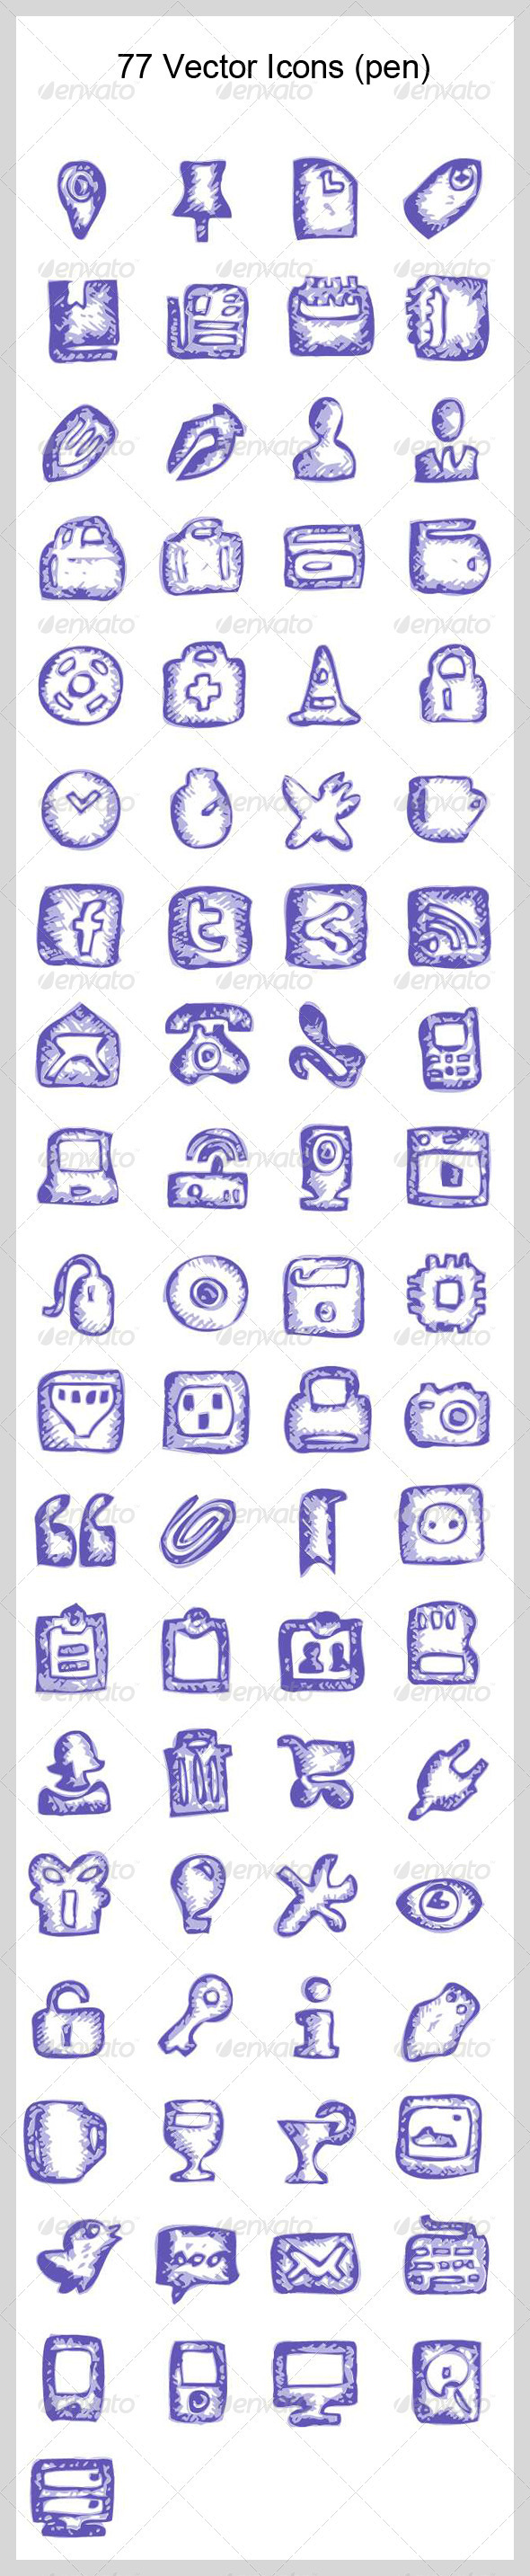 77 Vector Icons (pen)  - Web Icons